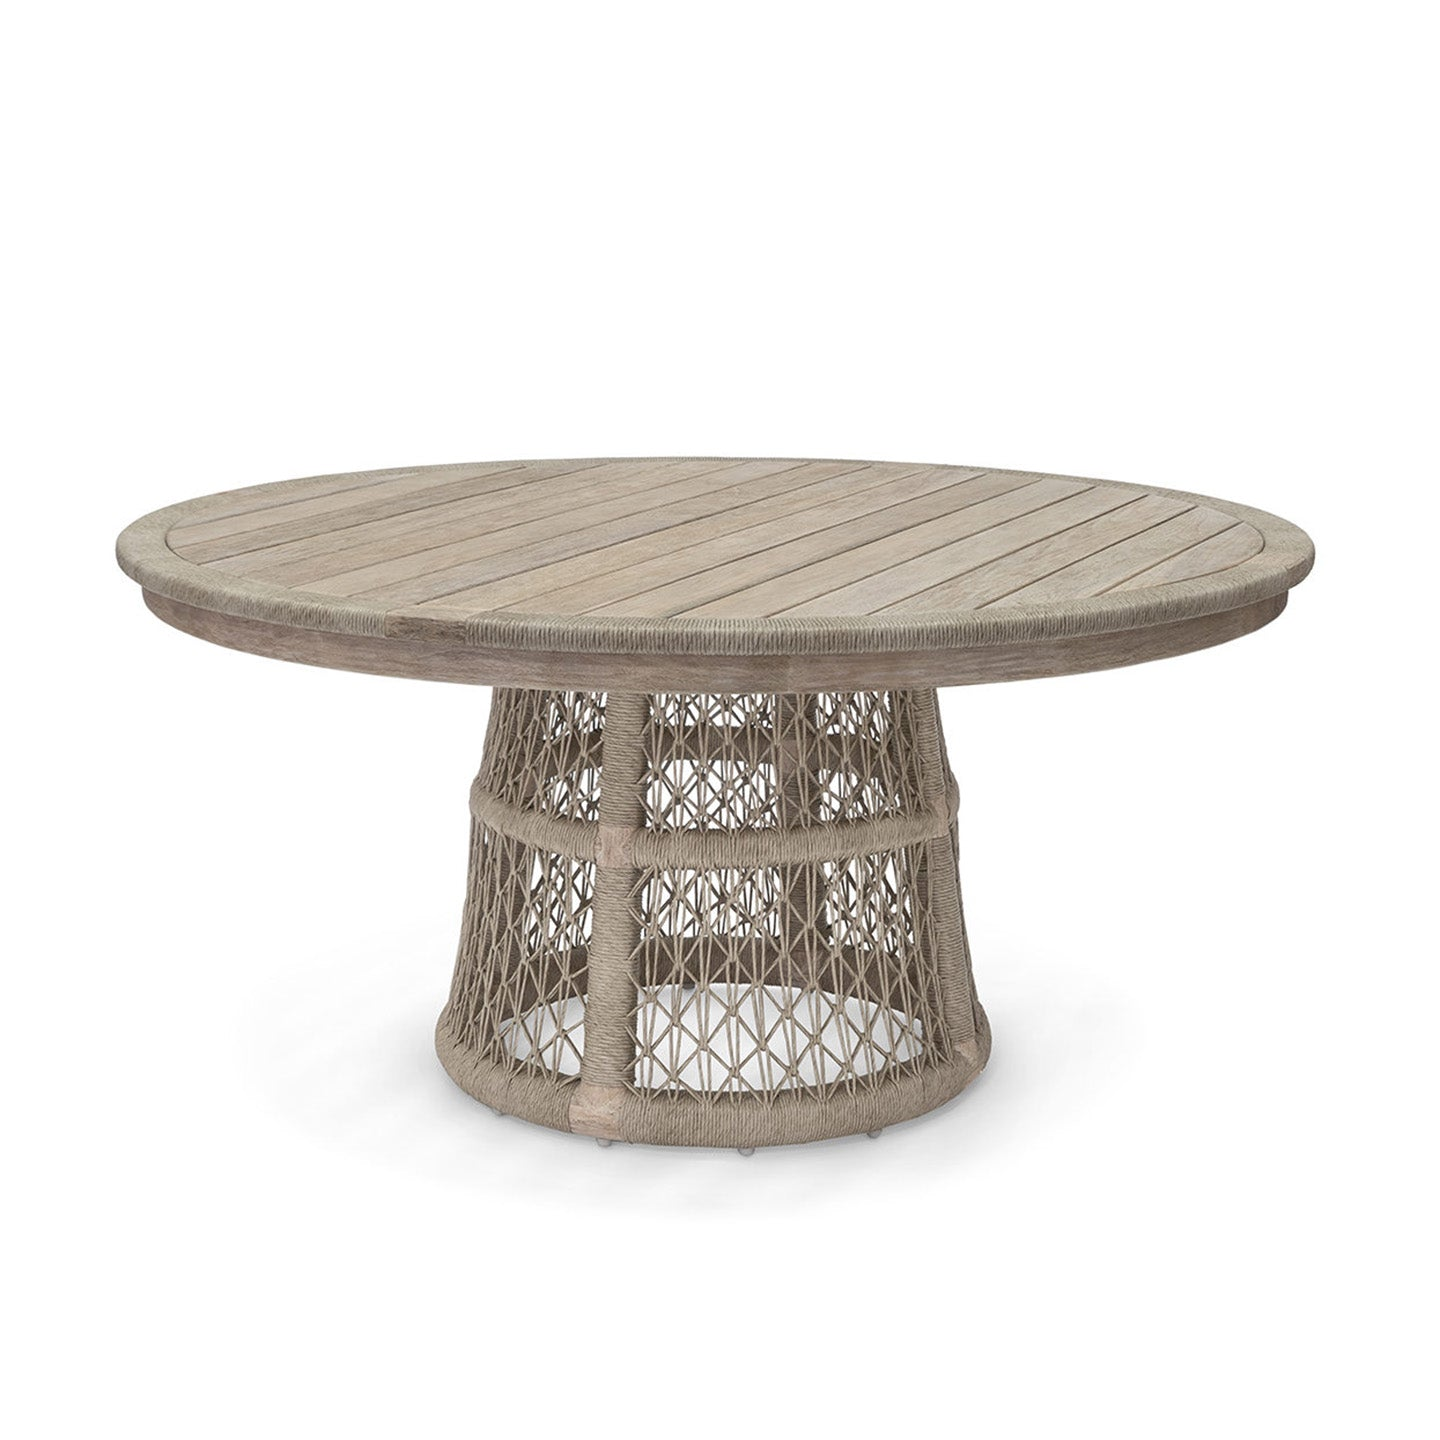 Montecito Outdoor Dining Table - Round